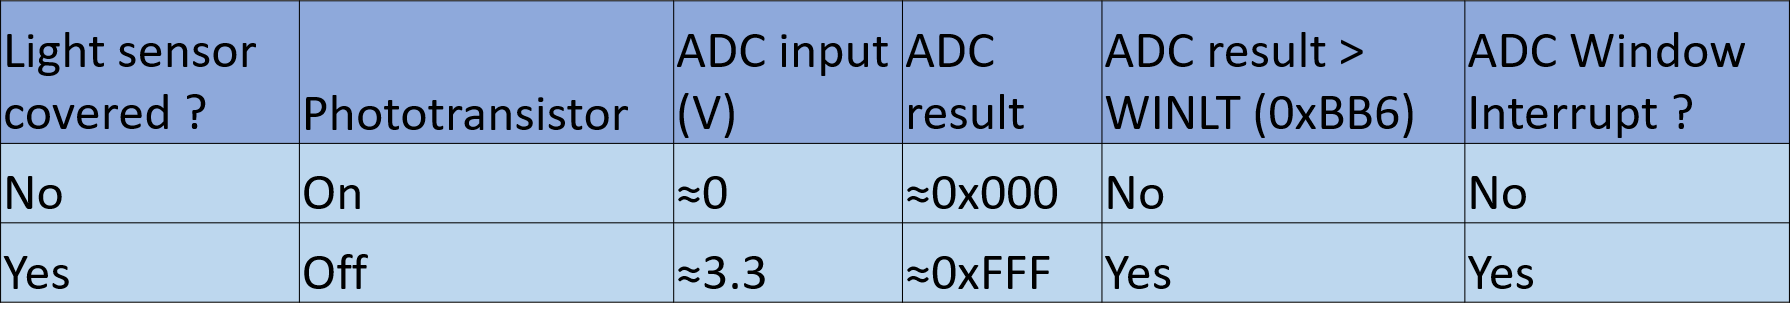 adc_config_table.png